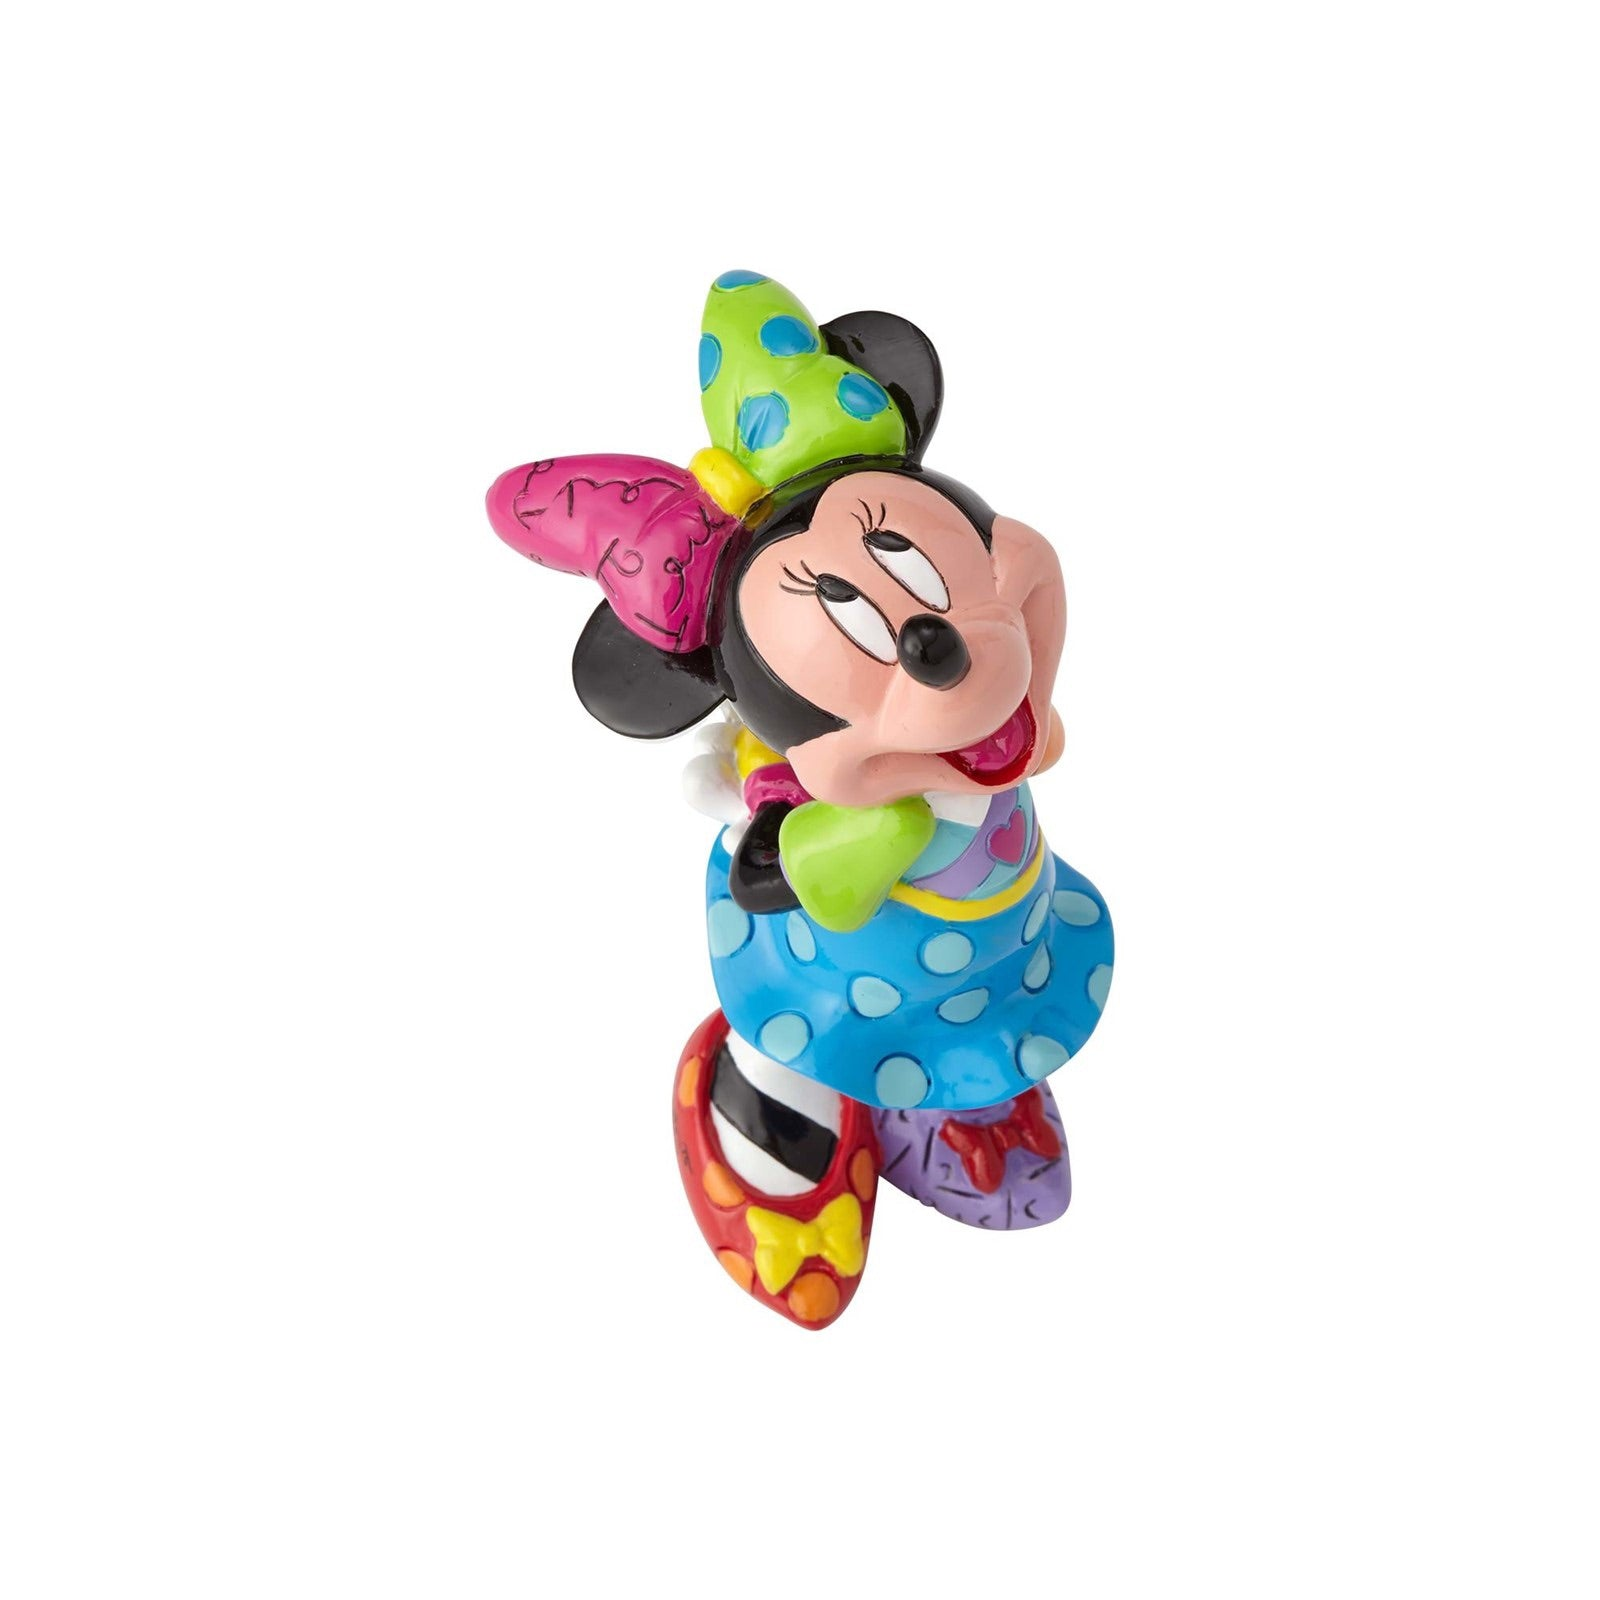 Figurine Disney mini Minnie Mouse